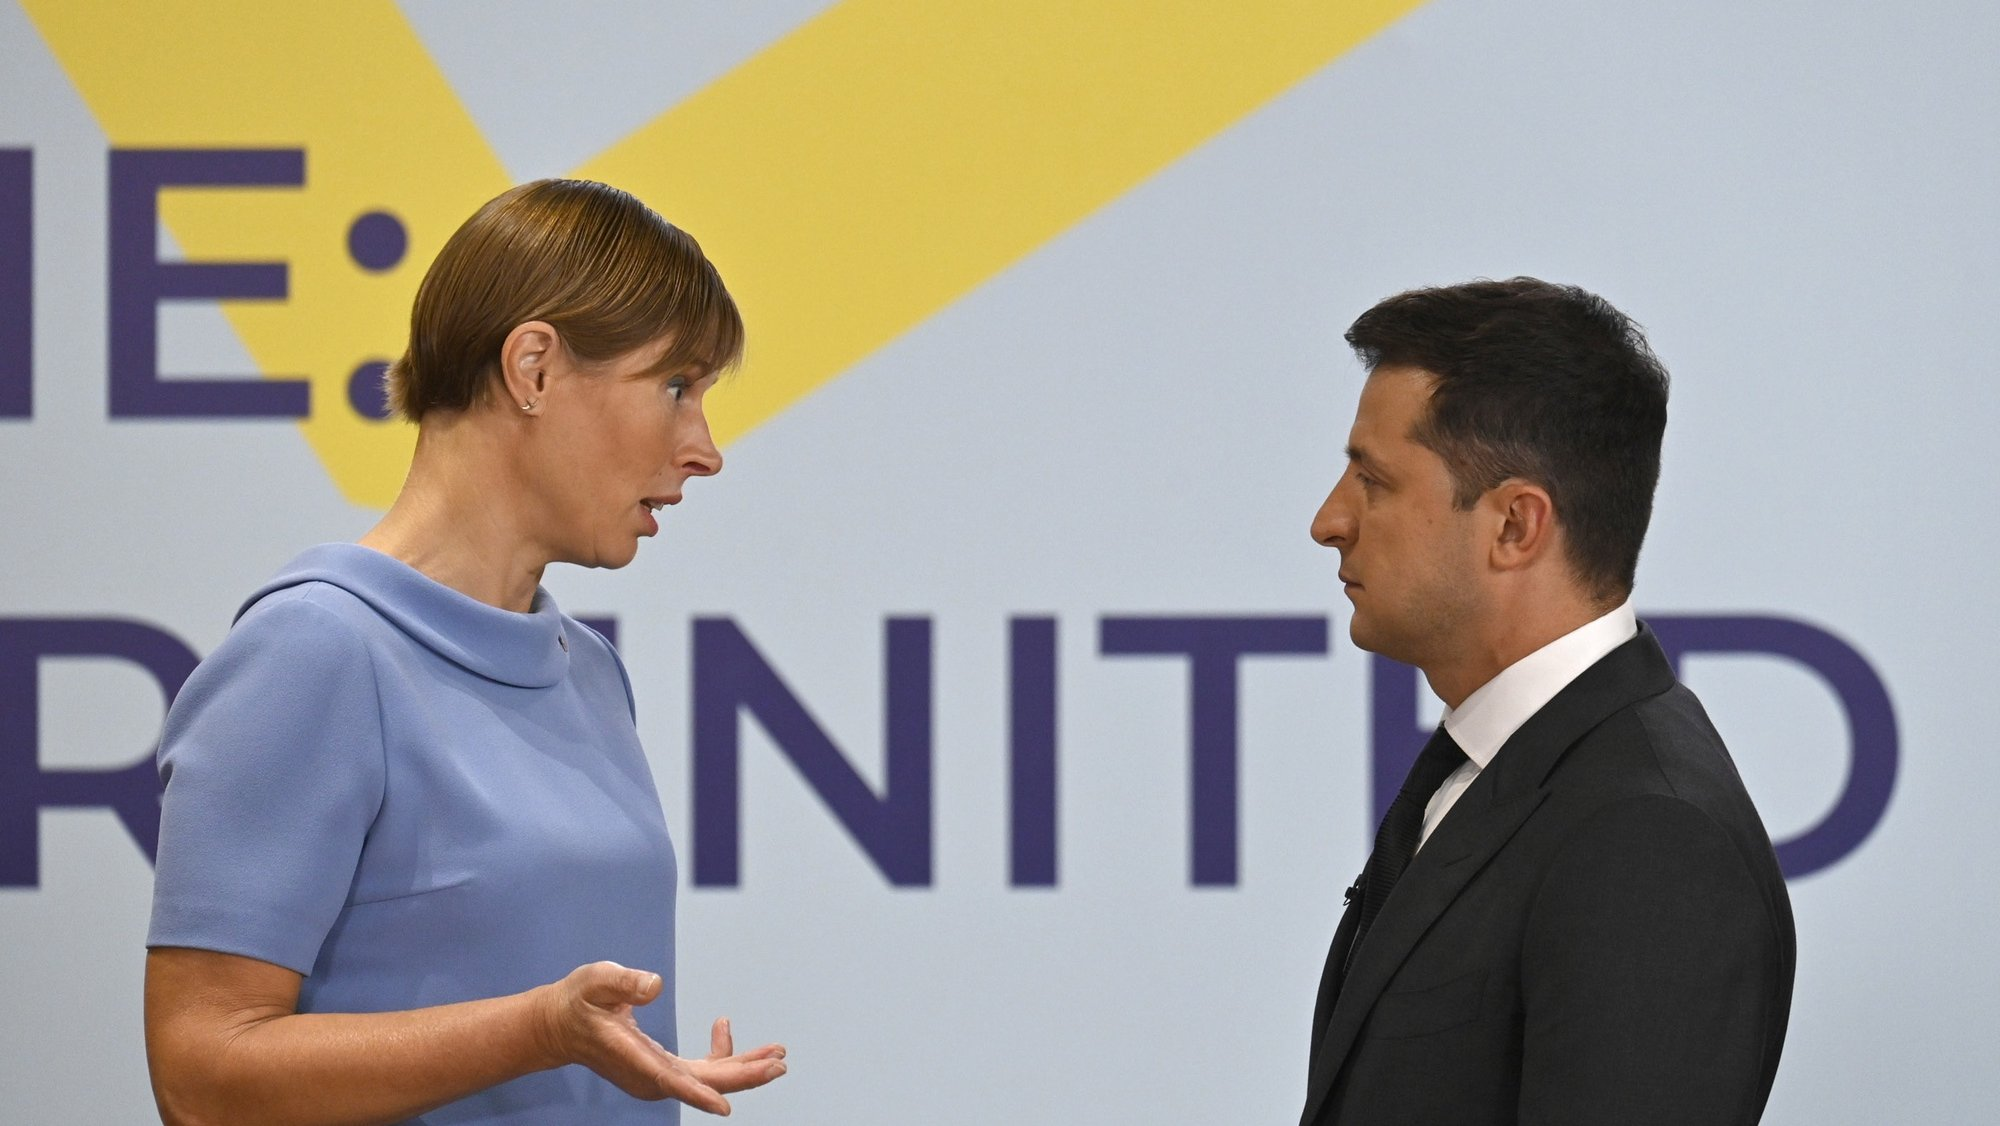 epa09425951 A handout photo made available by the Presidential press service shows Ukrainian President Volodymyr Zelensky (R) meeting with Kersti Kaljulaid (L), President of the Republic of Estonia, during the Crimea Platform summit in Kiev, Ukraine, 23 August 2021. The Crimea Platform is a new international consultation and coordination format set up to develop the initiative put forward by the President of Ukraine and aimed at improving the effectiveness of the international response to the ongoing occupation of Crimea.  EPA/FOREIGN MINISTRY PRESS SERVICE HANDOUT  HANDOUT EDITORIAL USE ONLY/NO SALES